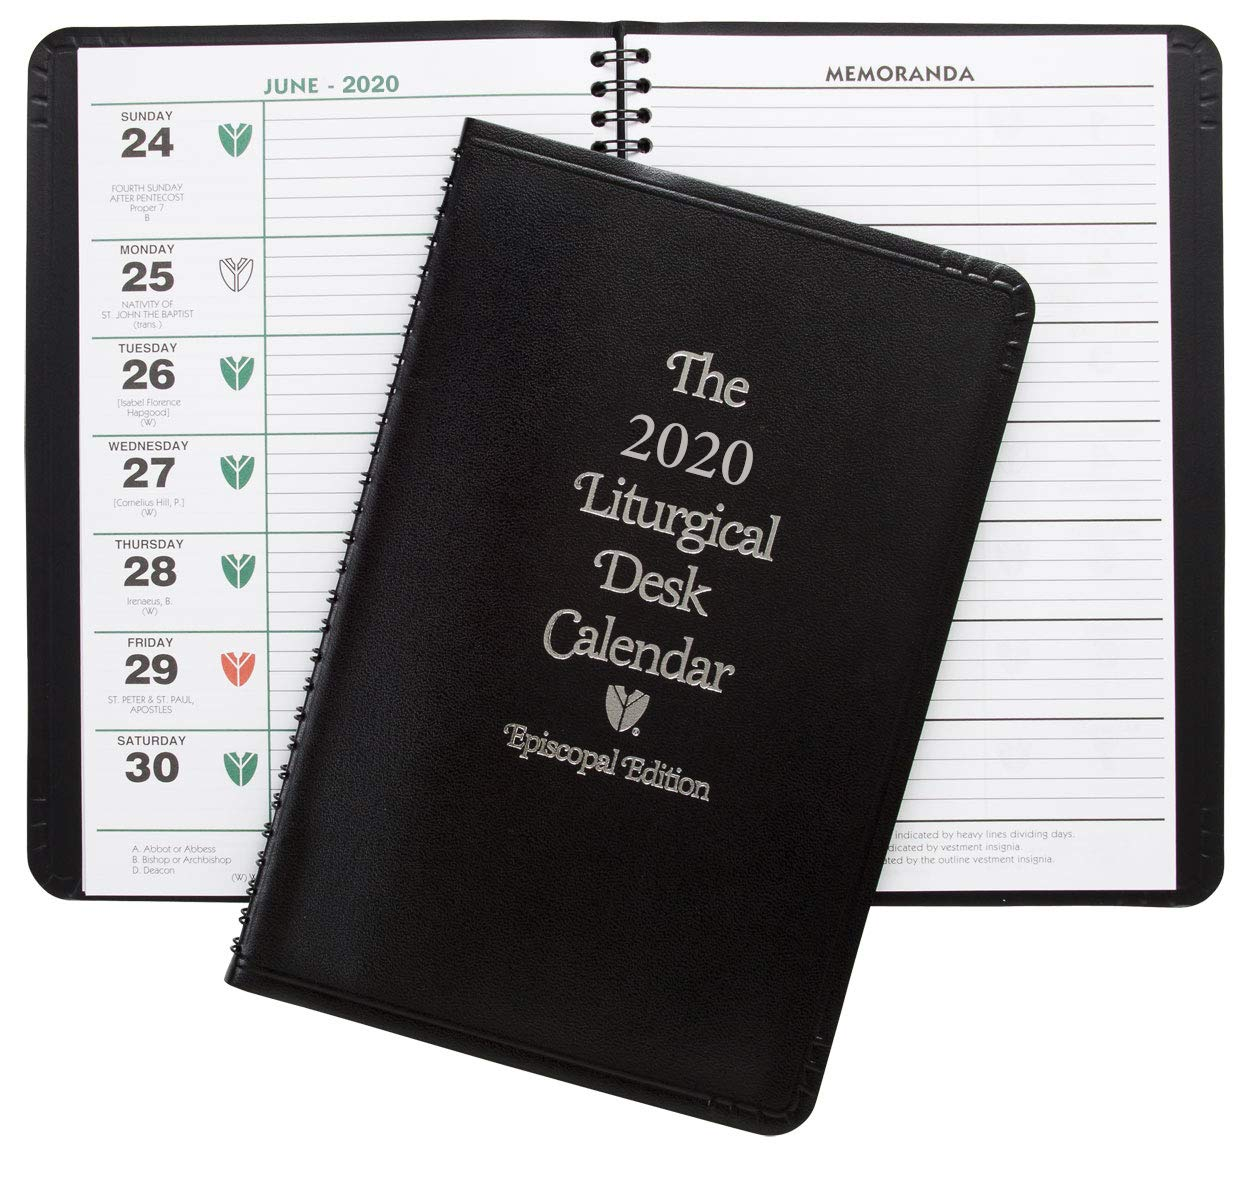 Desk Calendar 2020 Episcopal Liturgical Desk Calendar 2020: Church Publishing